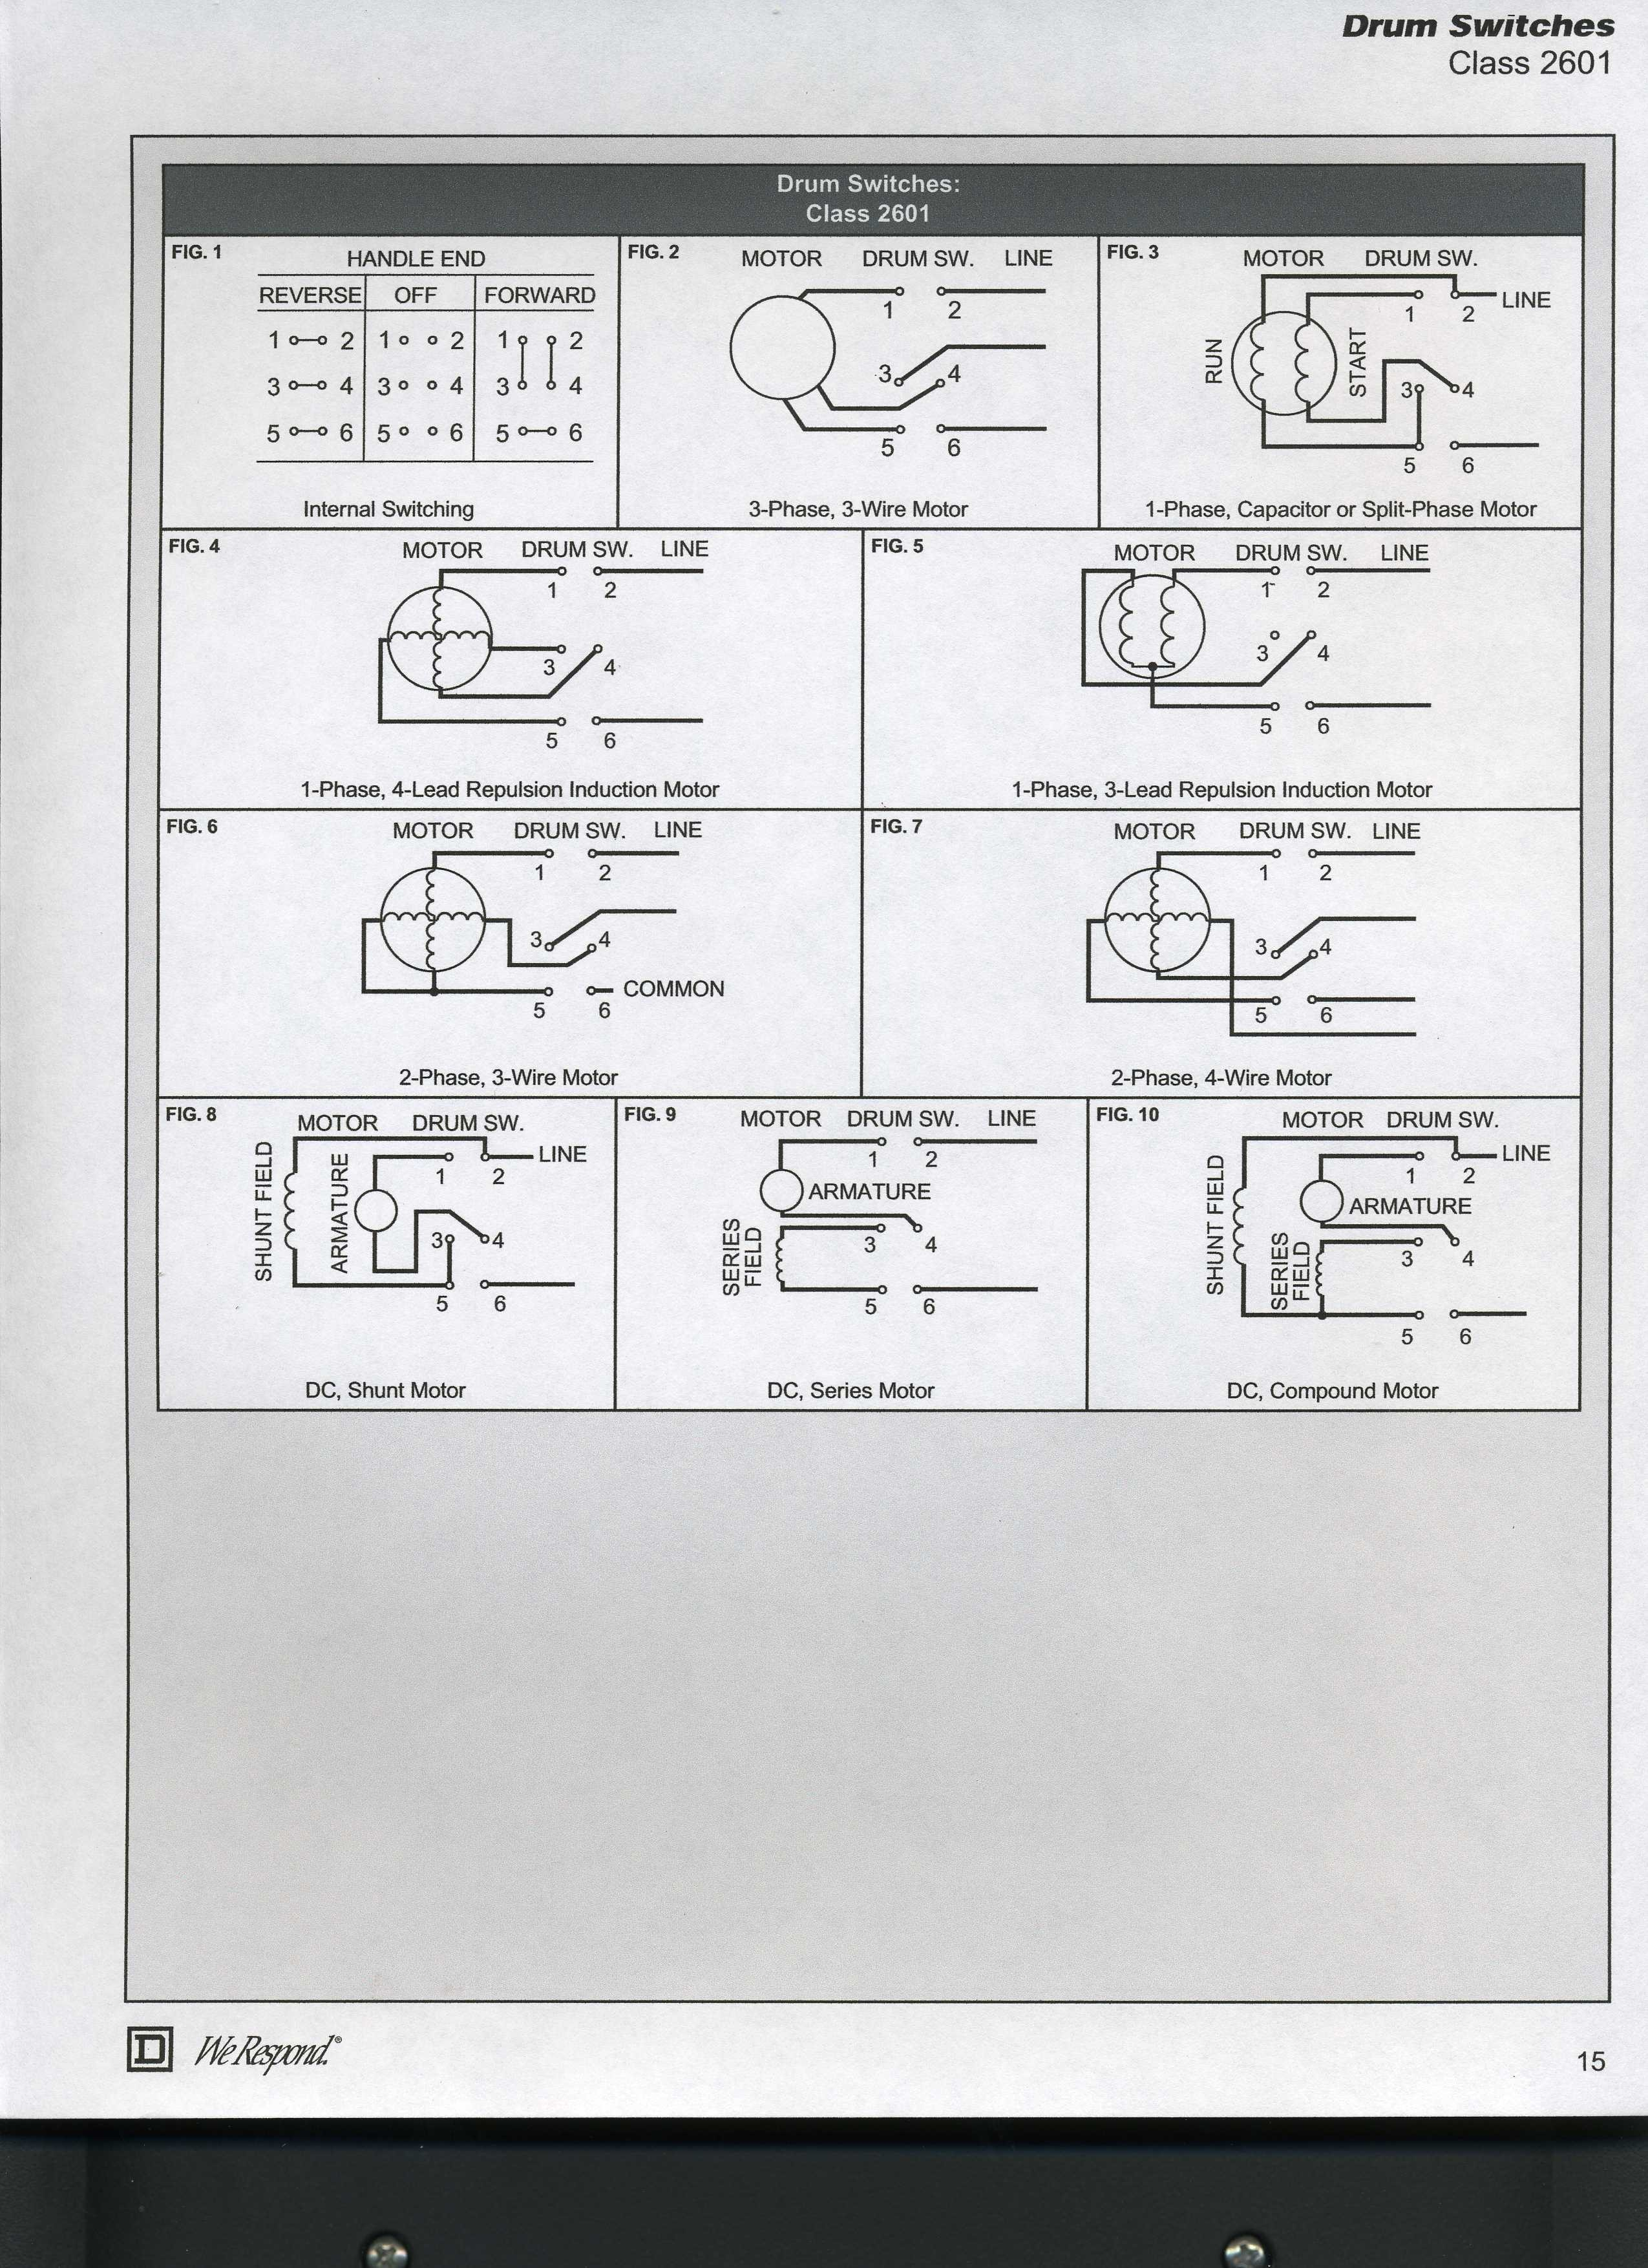 Wiring Diagram Electric Motor Reverse Save The Wiring Diagram For Reversing  A 110 V Electric Motor